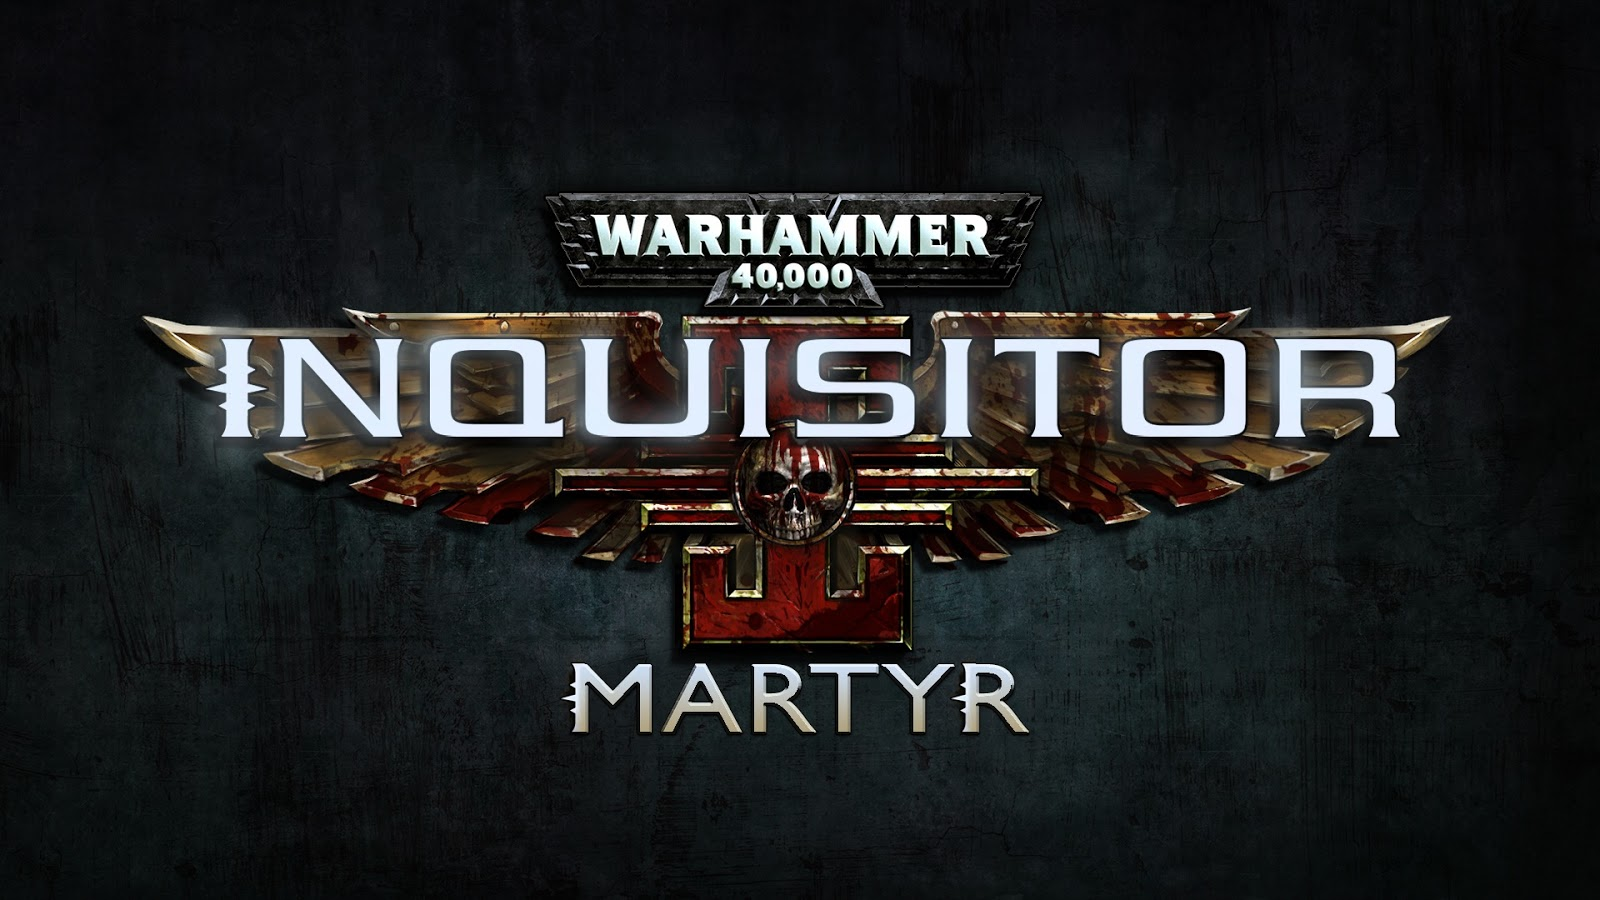 Warhammer 40 000 Inquisitor Martyr Xbox360 - Warhammer 40 000 Inquisitor Martyr For Xbox360